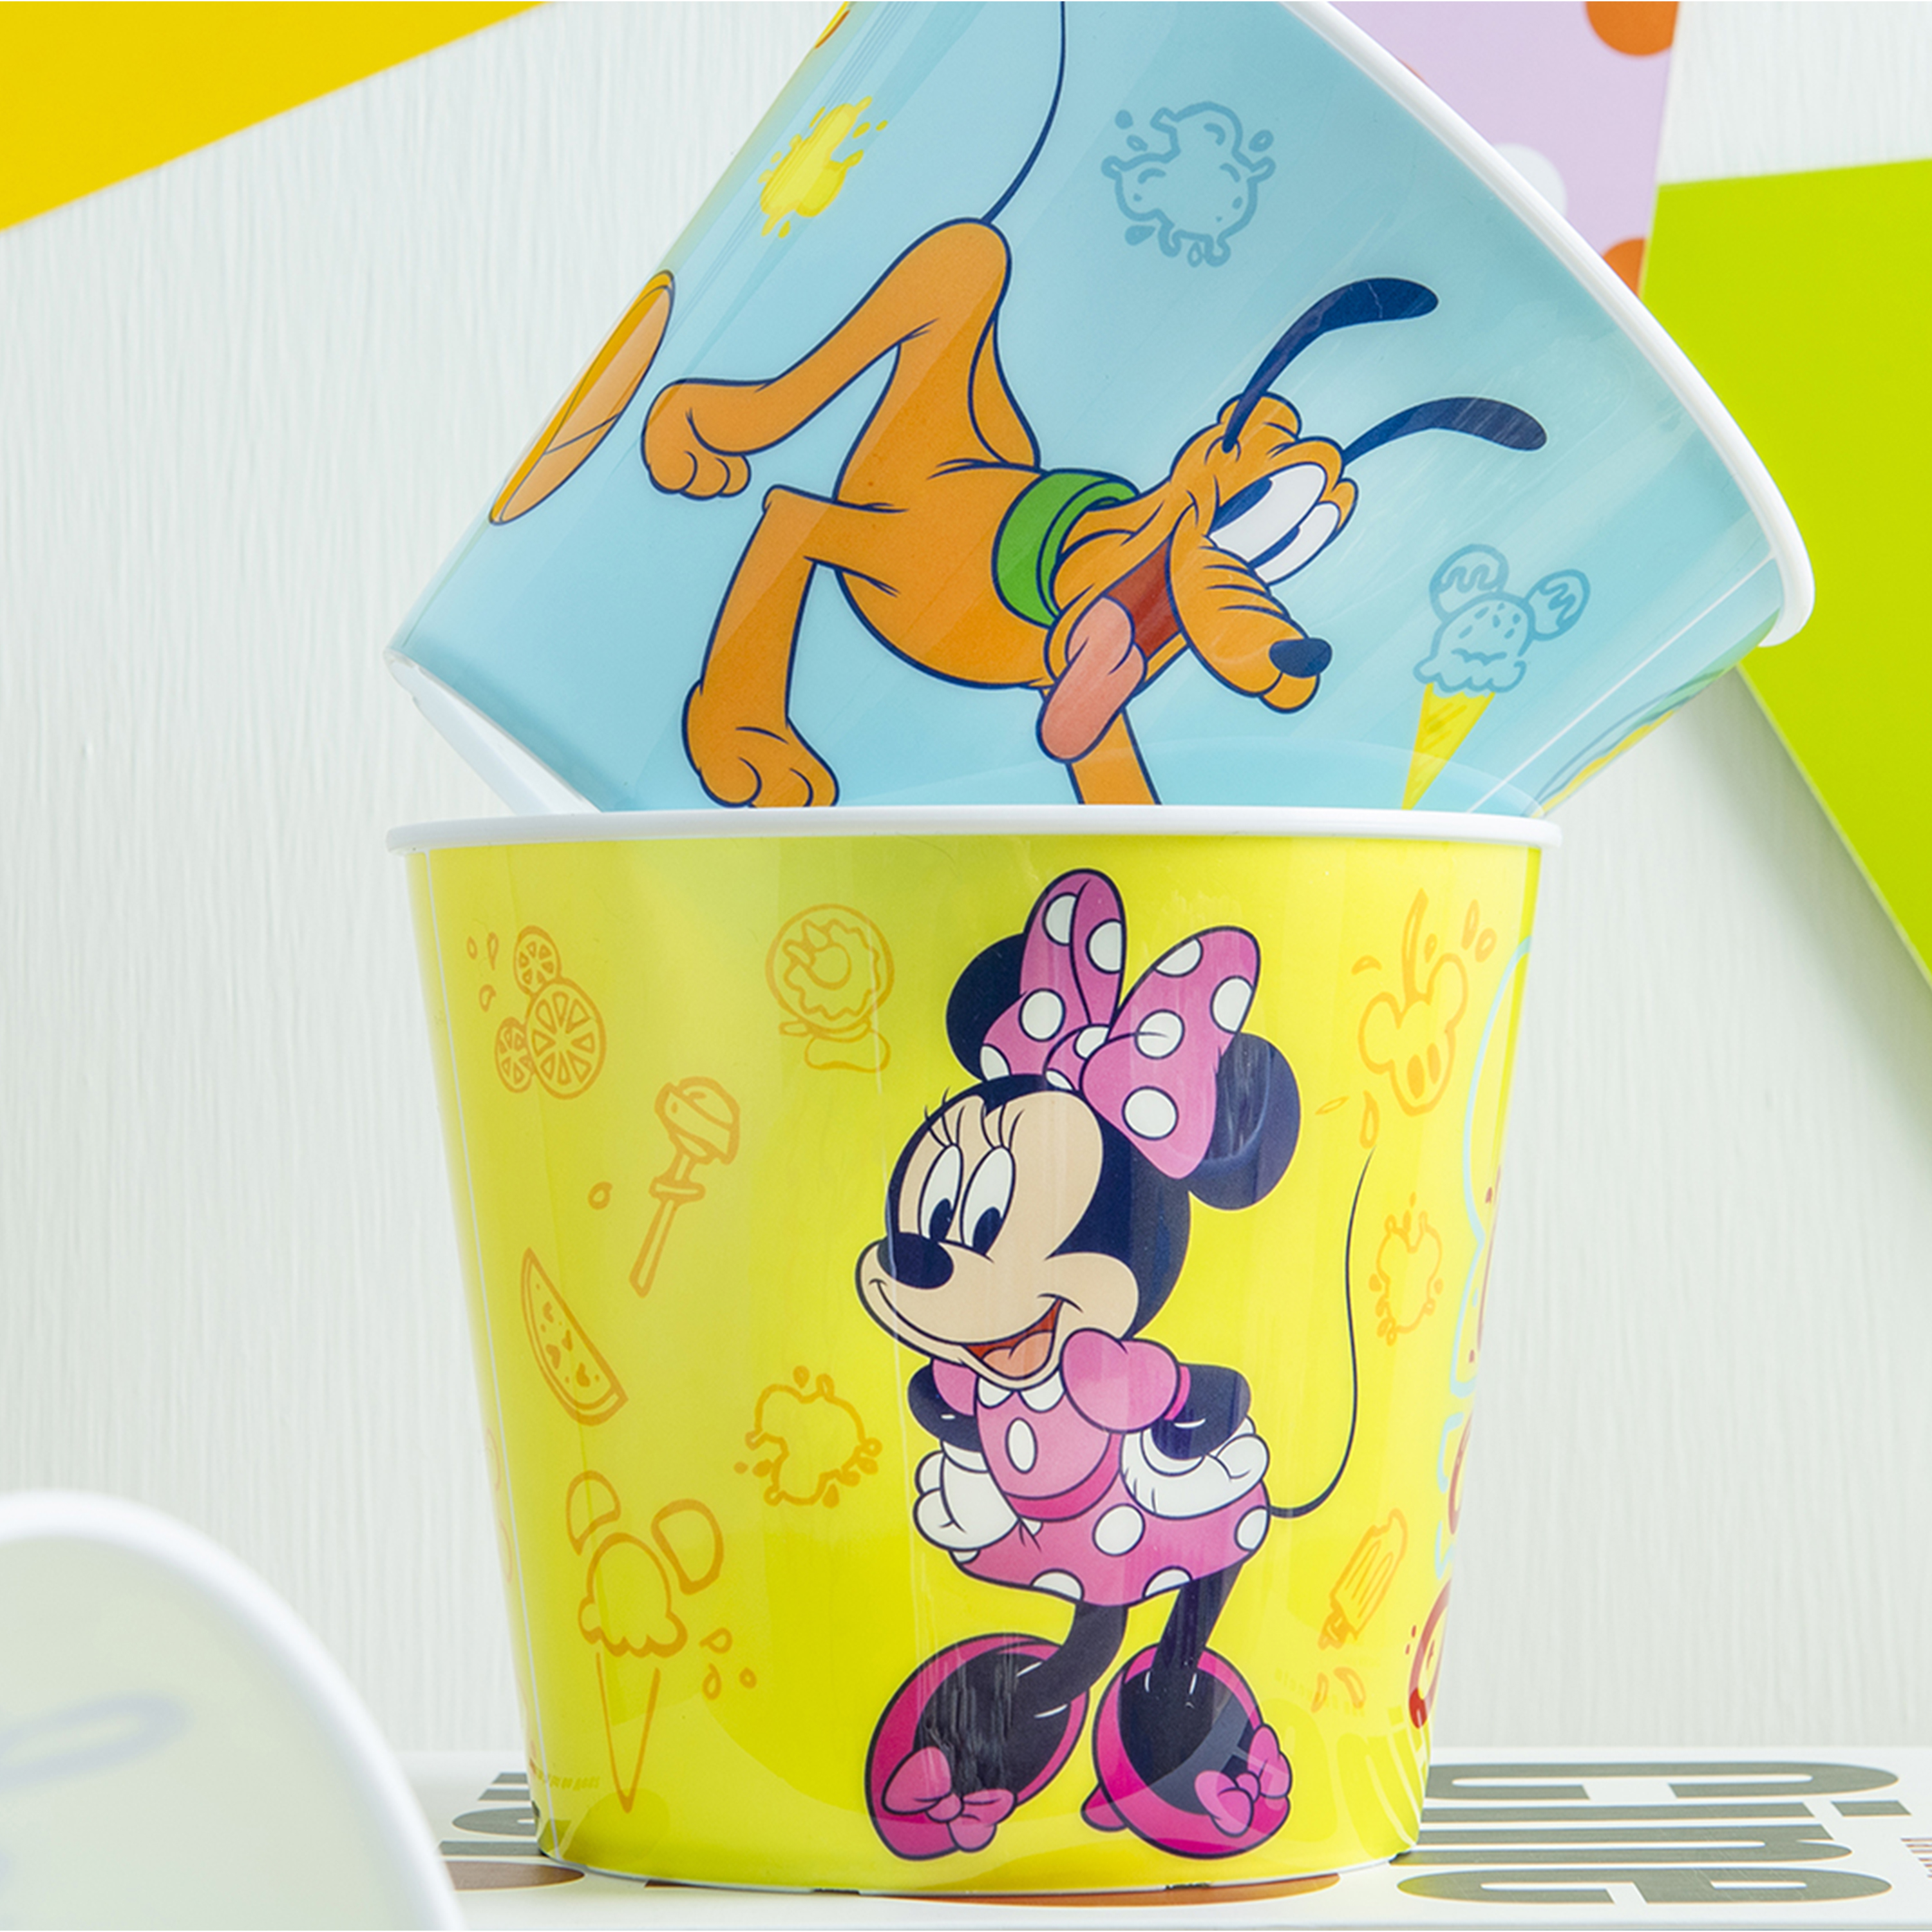 Disney Plastic Popcorn Container and Bowls, Mickey Mouse and Minnie Mouse, 5-piece set slideshow image 2